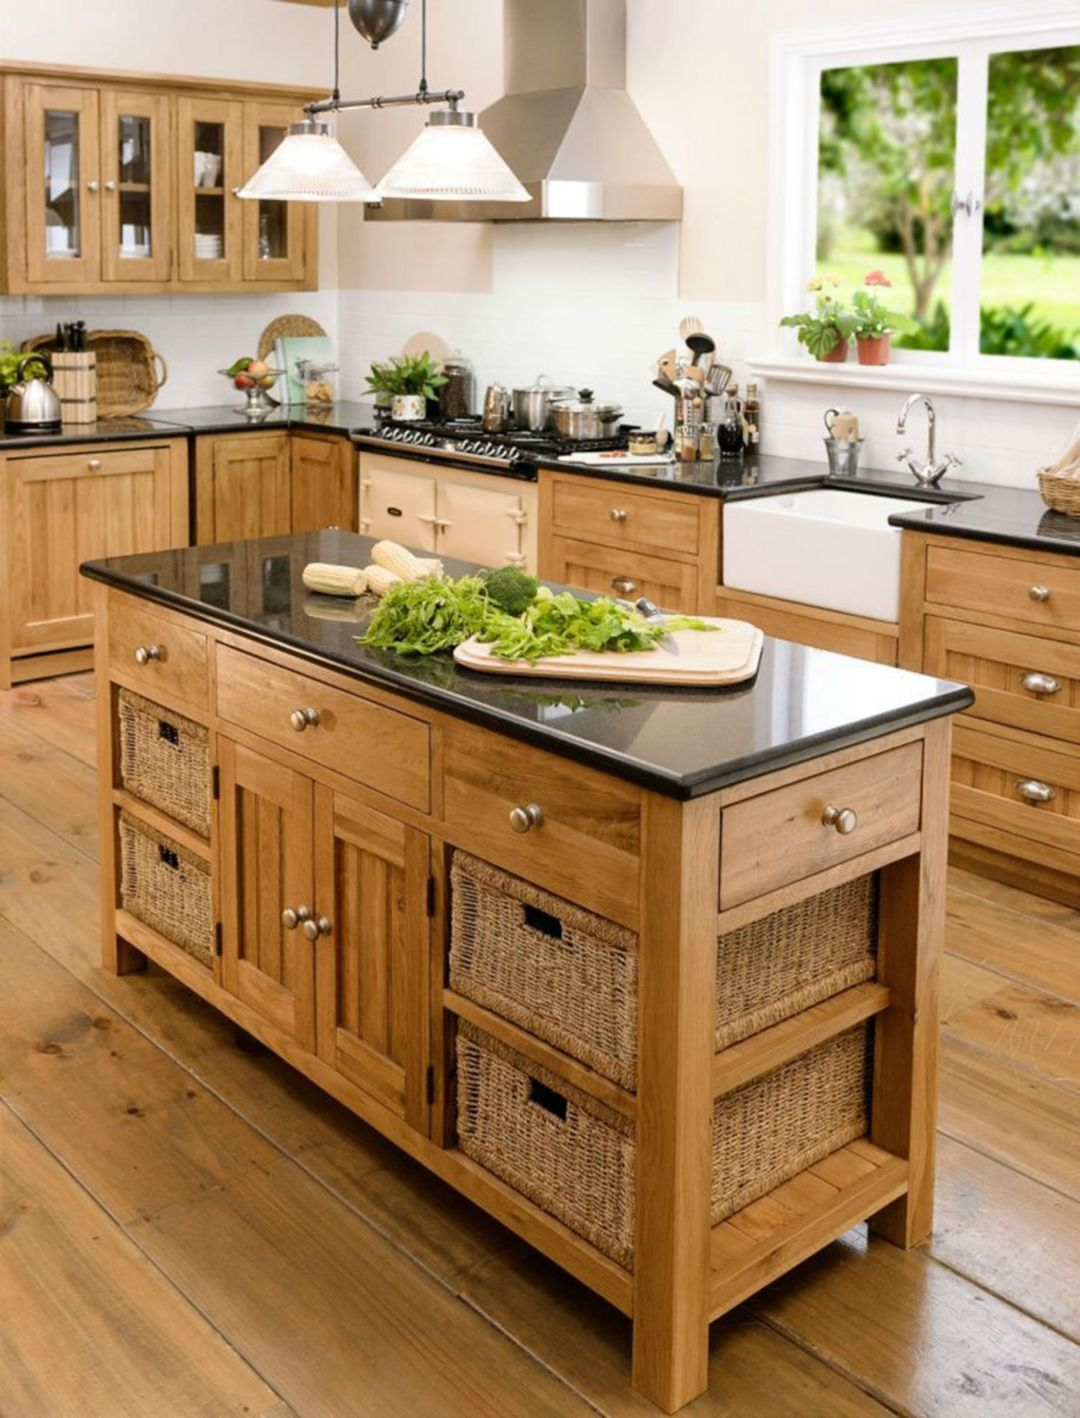 25 charming kitchen cabinet decorating ideas using oak trees in 2020 new kitchen cabinets on kitchen ideas cabinets id=27838